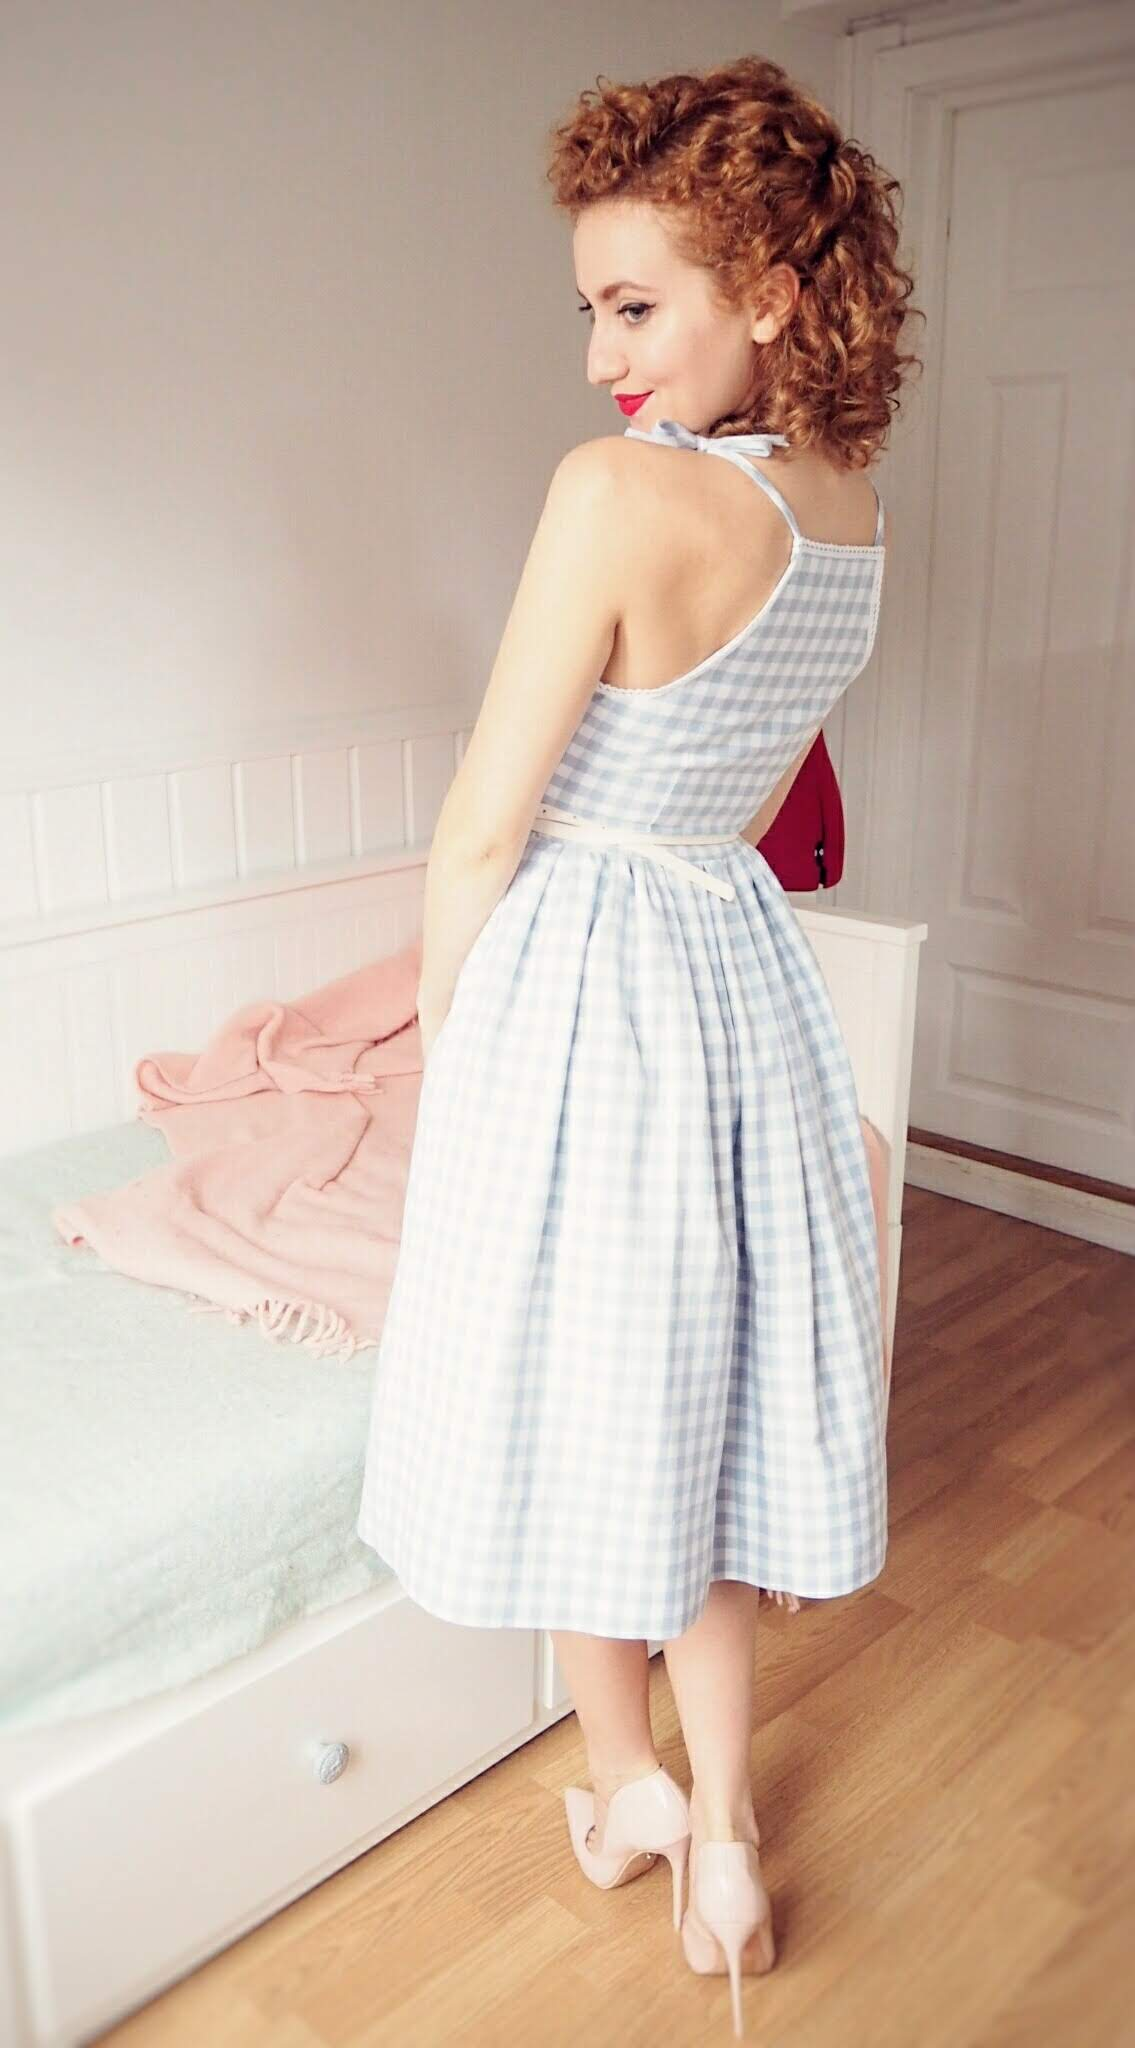 free dress sewing tutorial, DIY Vintage Dress, diy vintage gingham dress, 1950's dress, vintage summer dress, sewing vintage, vintage dress, 50's dress, vintage fashion #freesewingtutorial #dresssewingtutorial #vintagedress #50sdress #vintageclothes #diydress